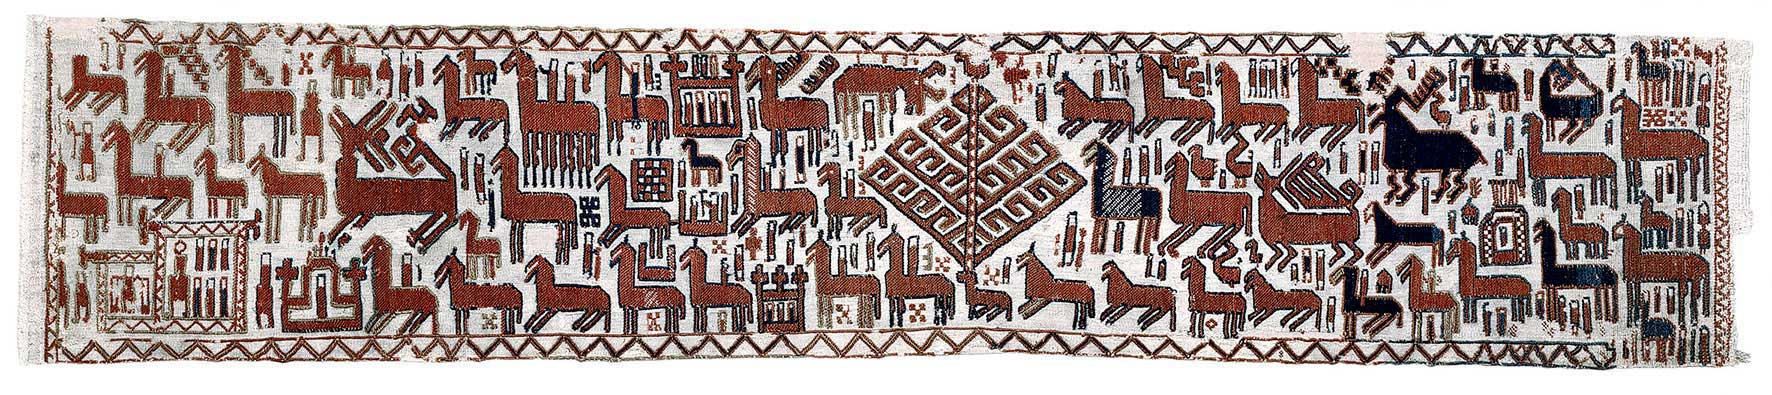 Överhogdalsbonaderna, Viking Tapestry, dating back over 1,000 years. Photo: Jamtli